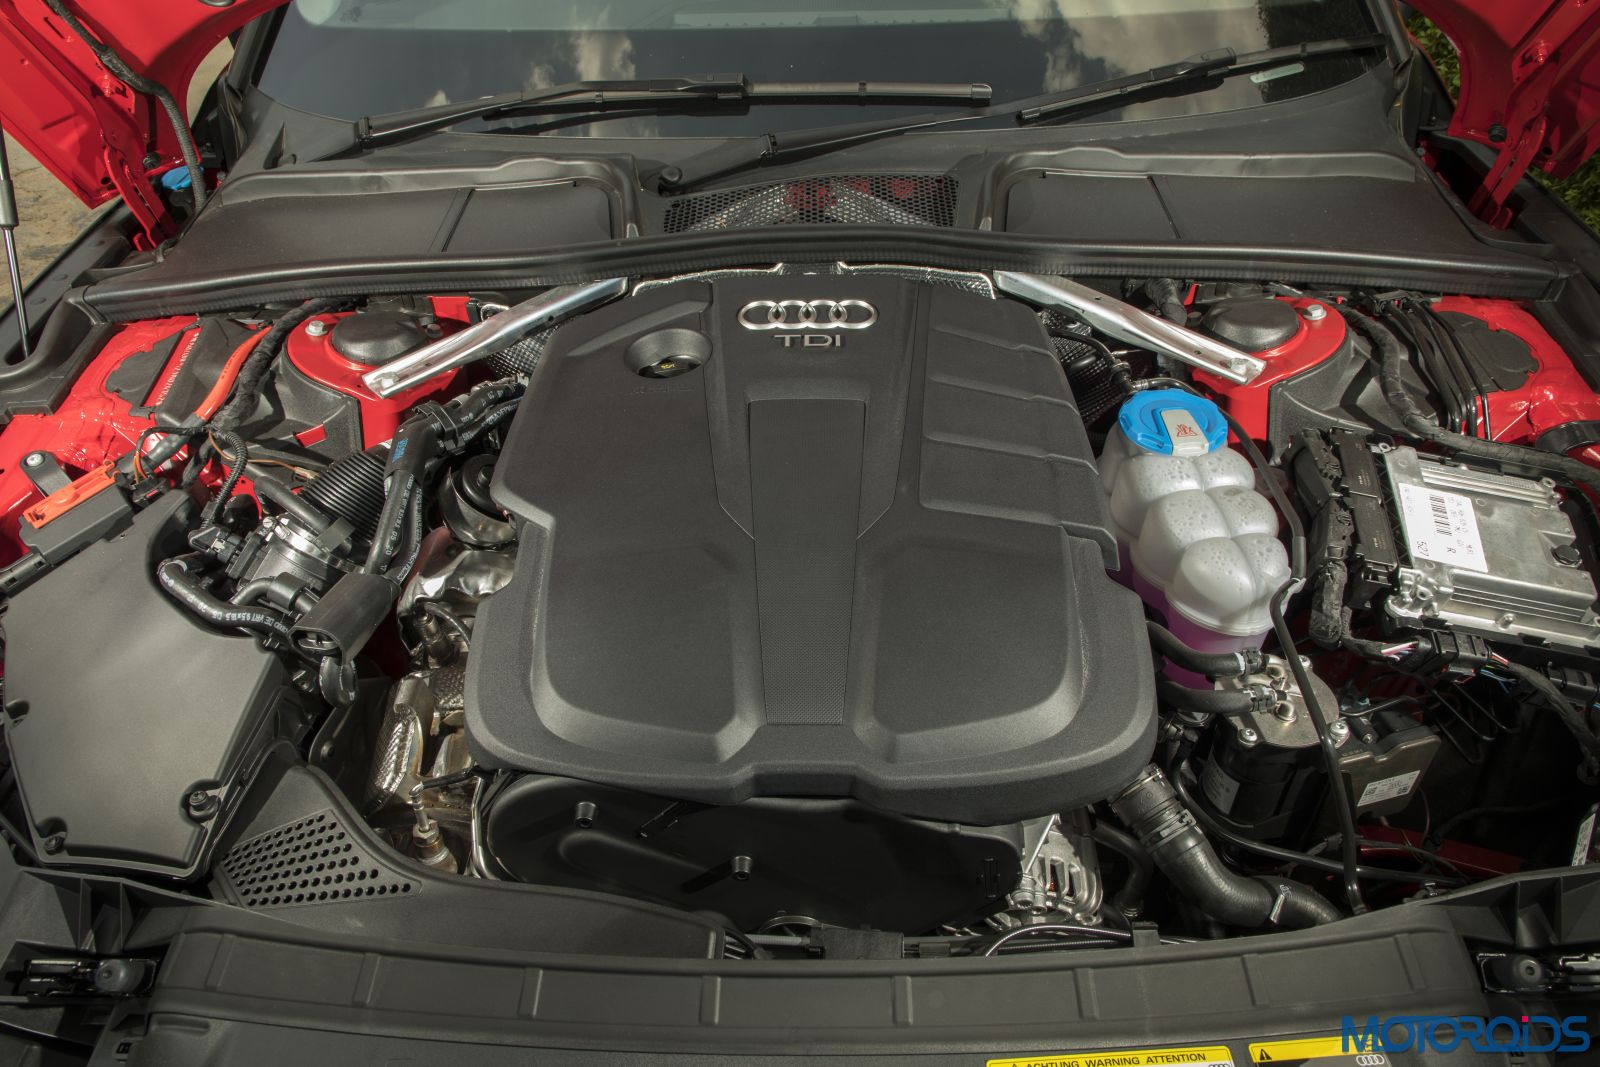 October 5, 2017-2017-Audi-A5_engine-bay13.jpg